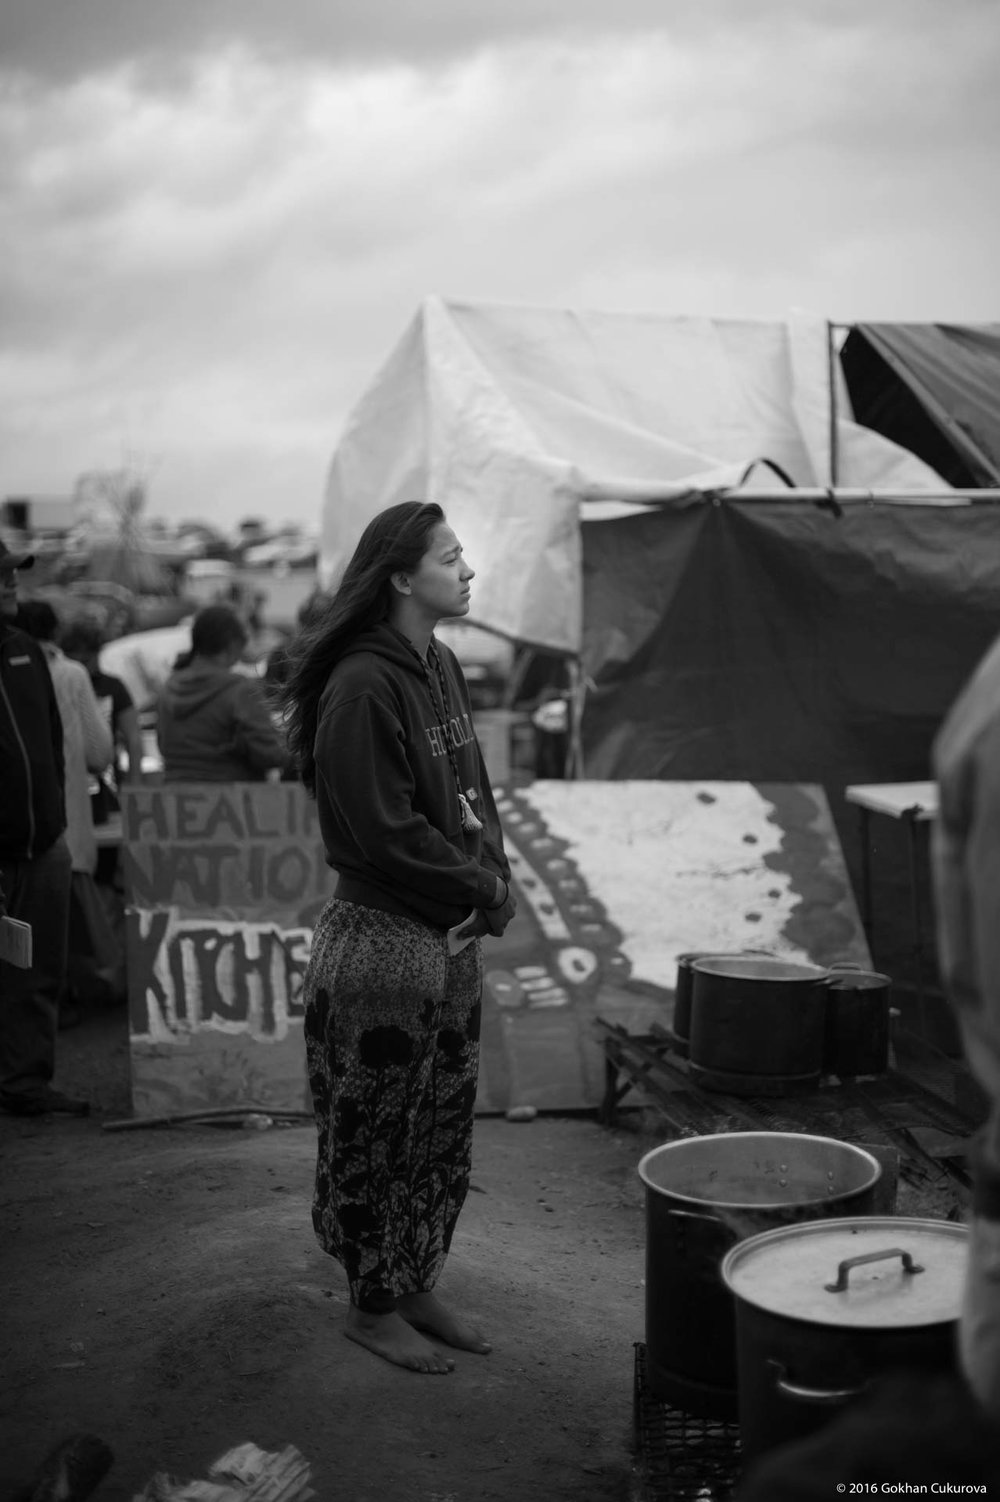 A girl standing under the rain barefoot, listening the Sitting Bull's song sang by the crowd of hundreds.